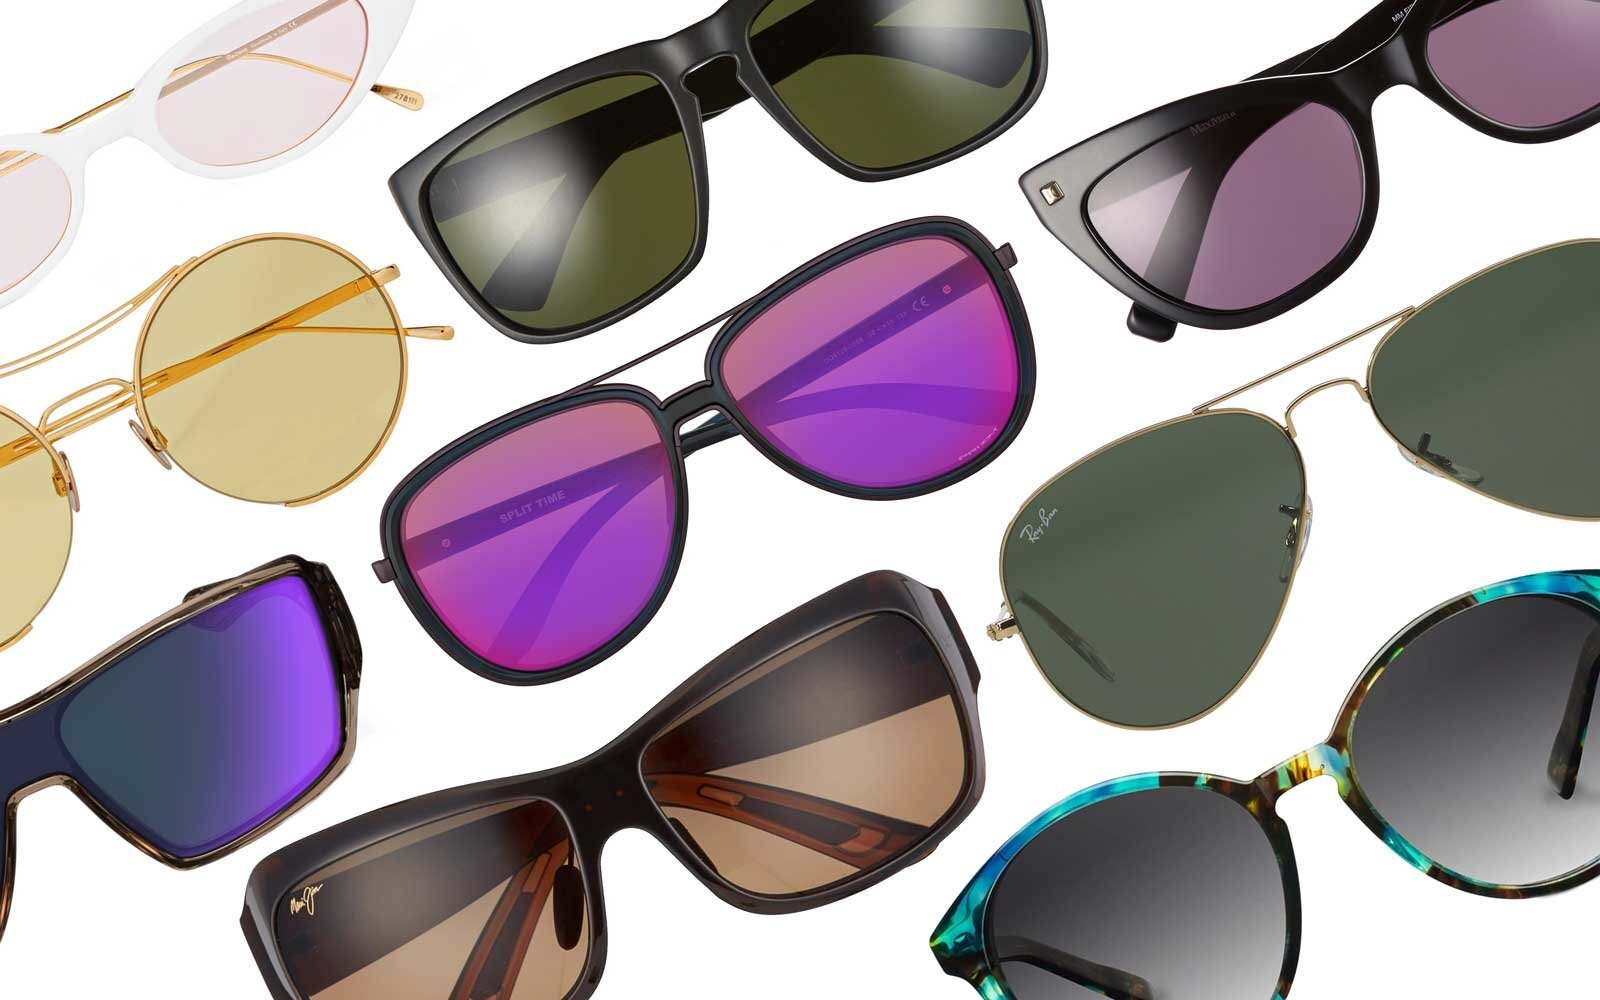 78b9d88c35924 19 Pairs of Sunglasses for Your Next Adventure